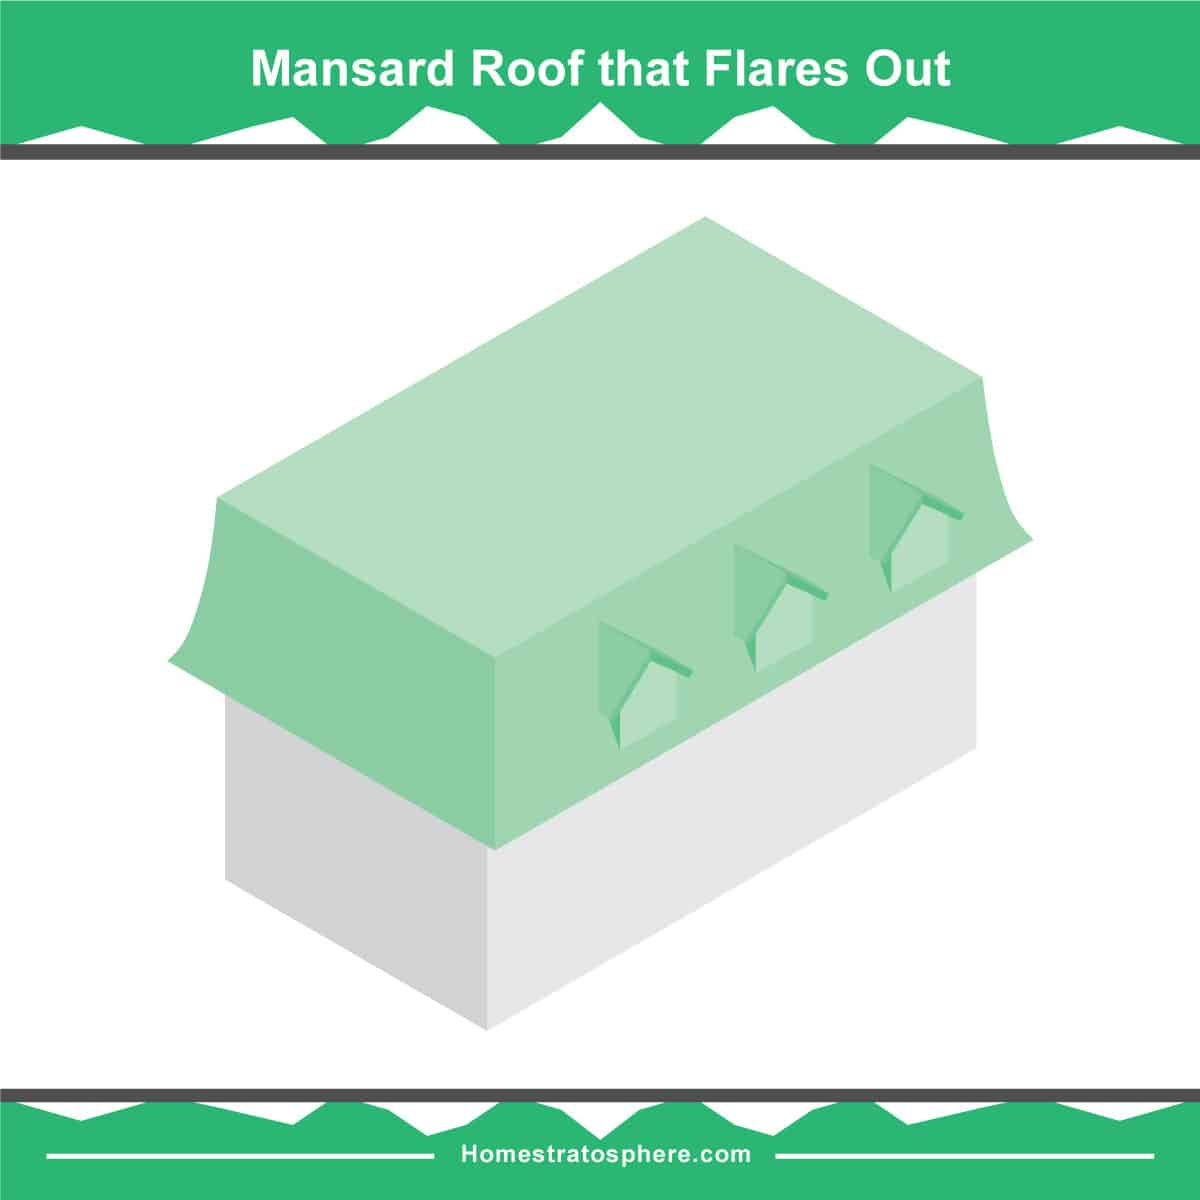 Flare-Out Mansard roof diagram